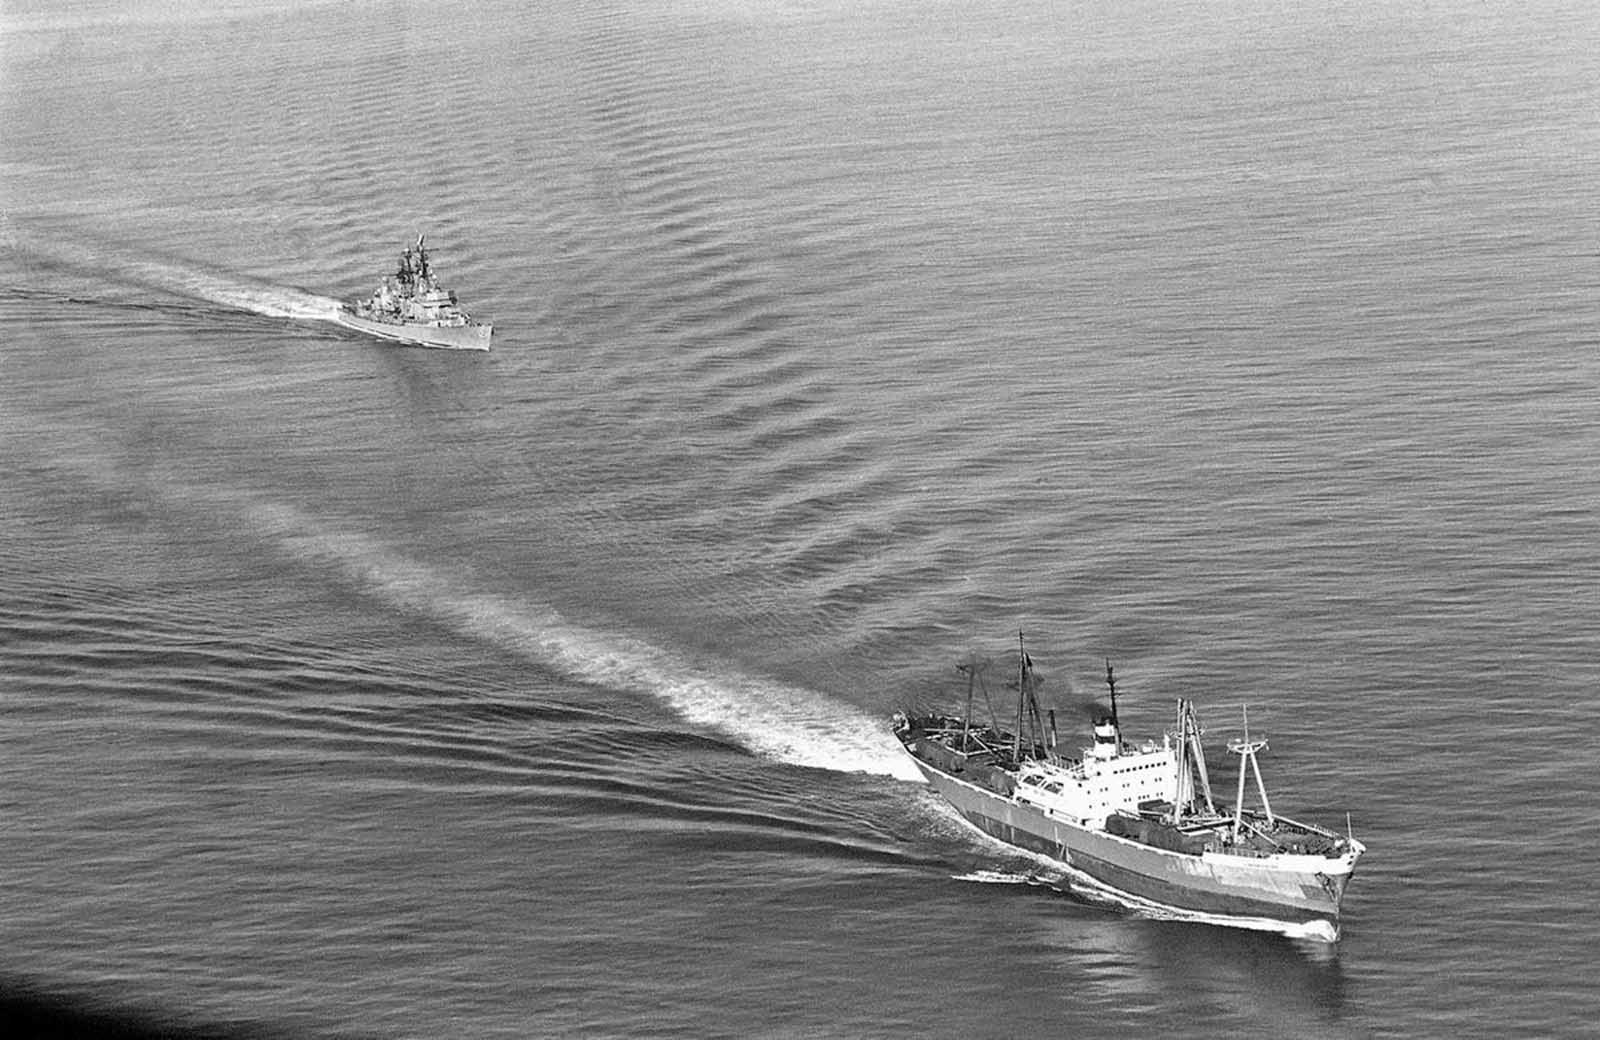 The U.S. Navy guided missile ship Dahlgren trails the Soviet Leninsky Komsomol as the Russian vessel departed Casilda, Cuba, on November 10, 1962.